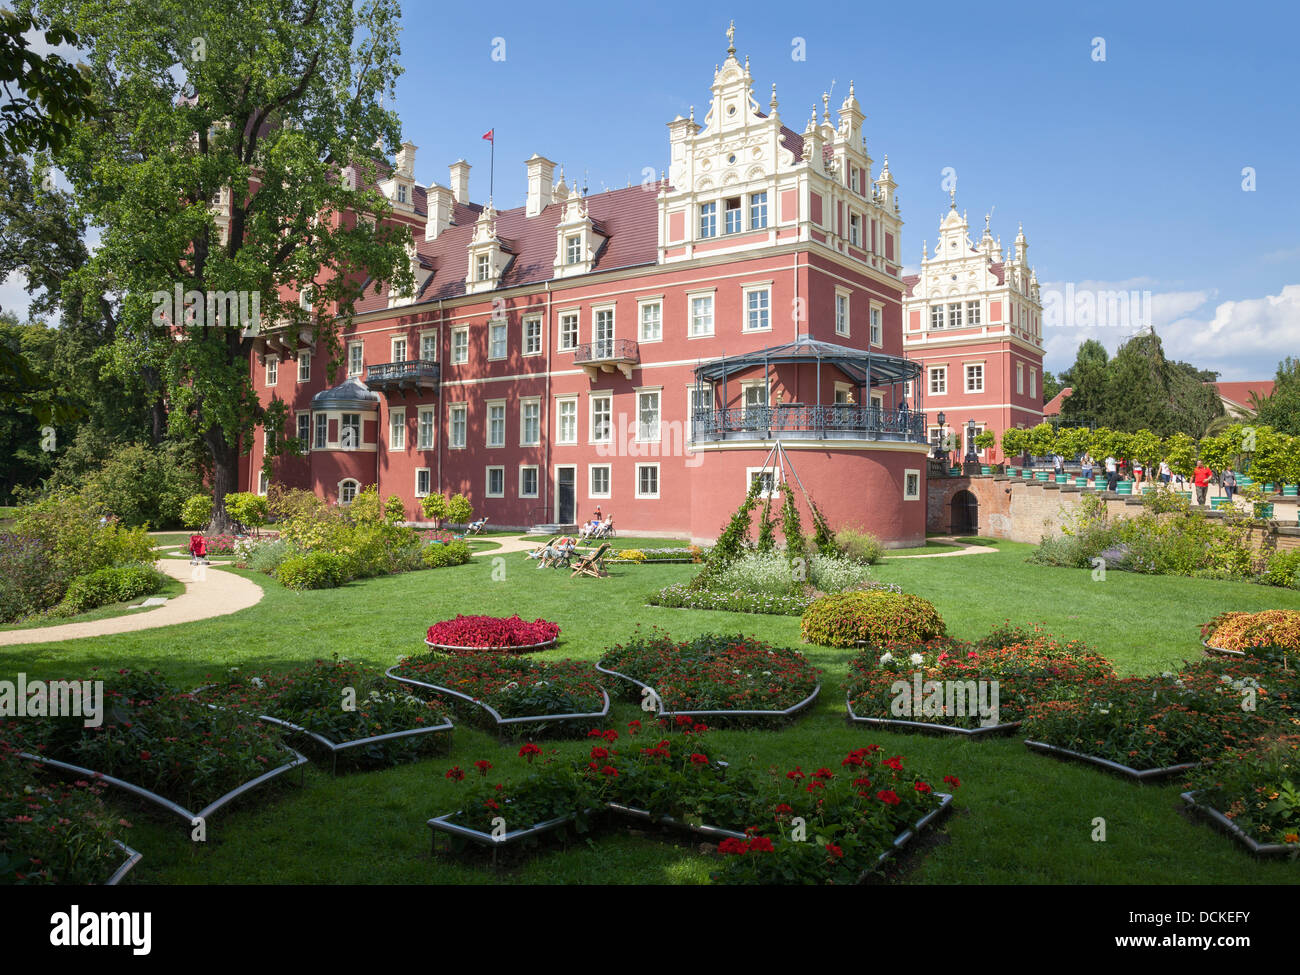 neuen schloss bad muskau in muskauer park fuerst pueckler park stock photo 59435487 alamy. Black Bedroom Furniture Sets. Home Design Ideas